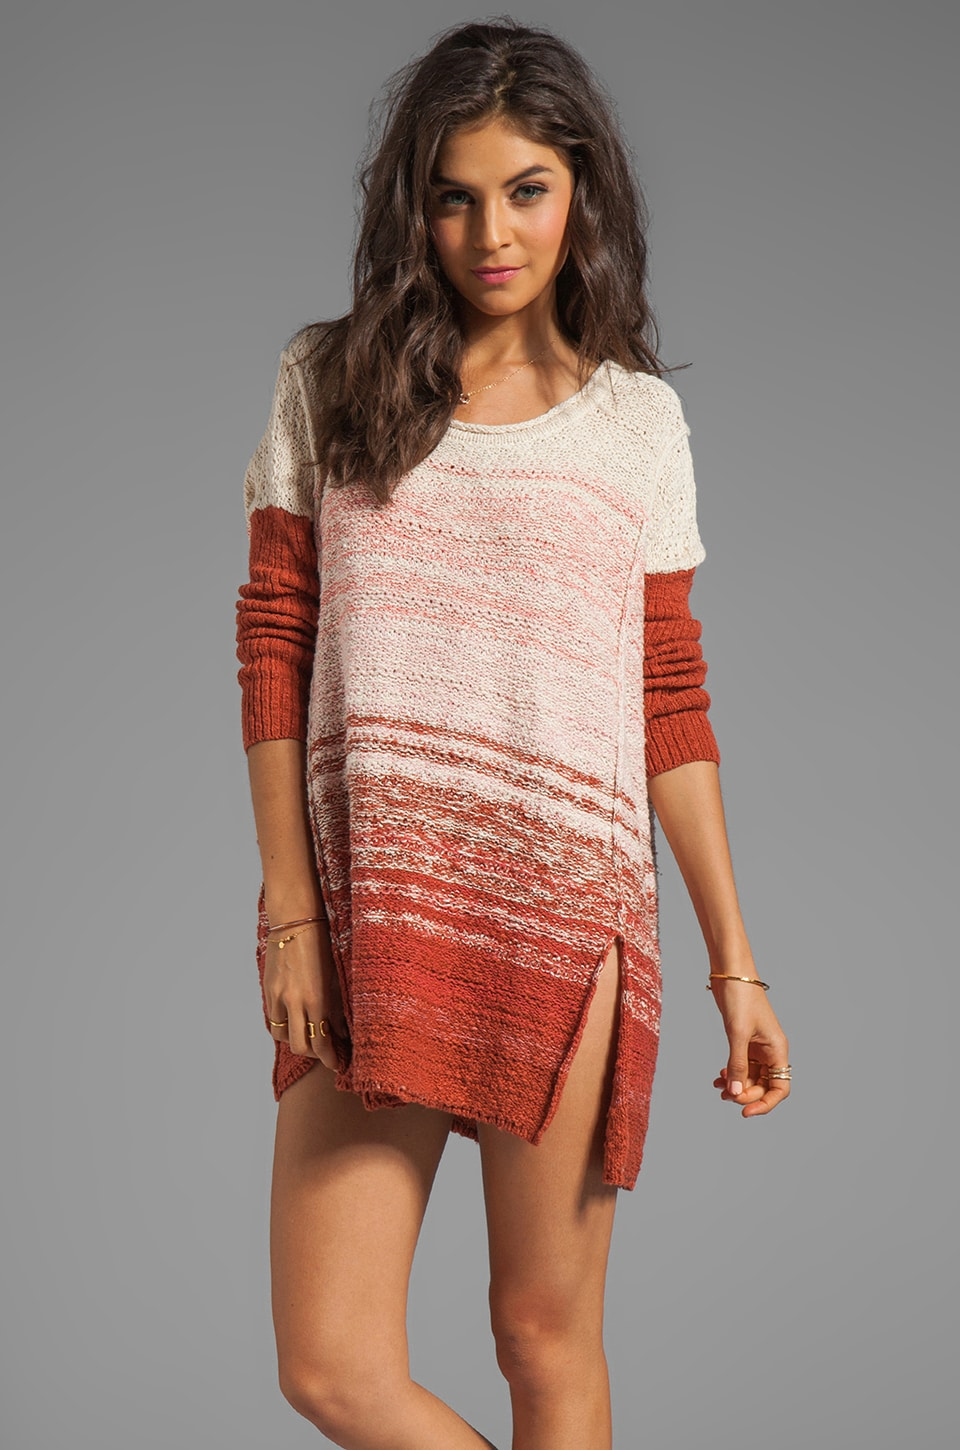 Free People Side Split Pullover Dress in Cream Rust Combo